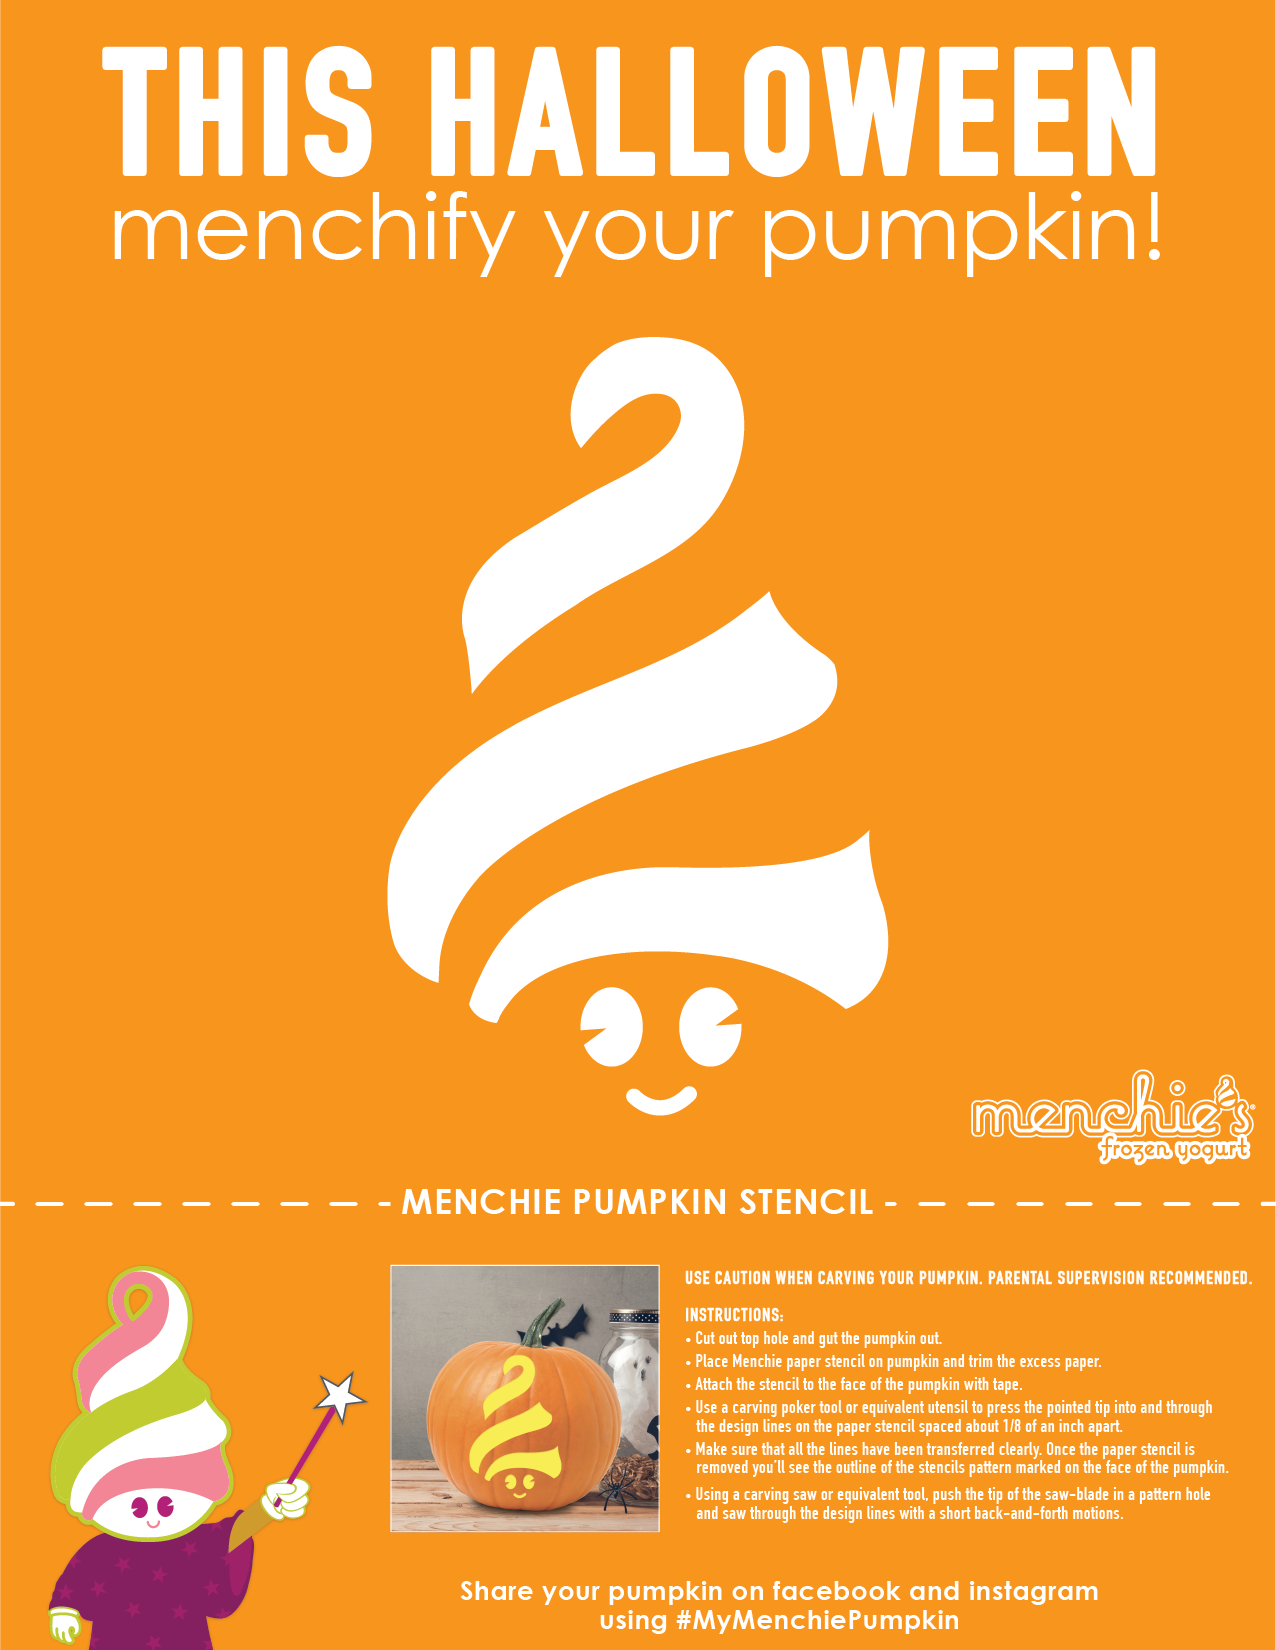 Create a Menchie pumpkin!